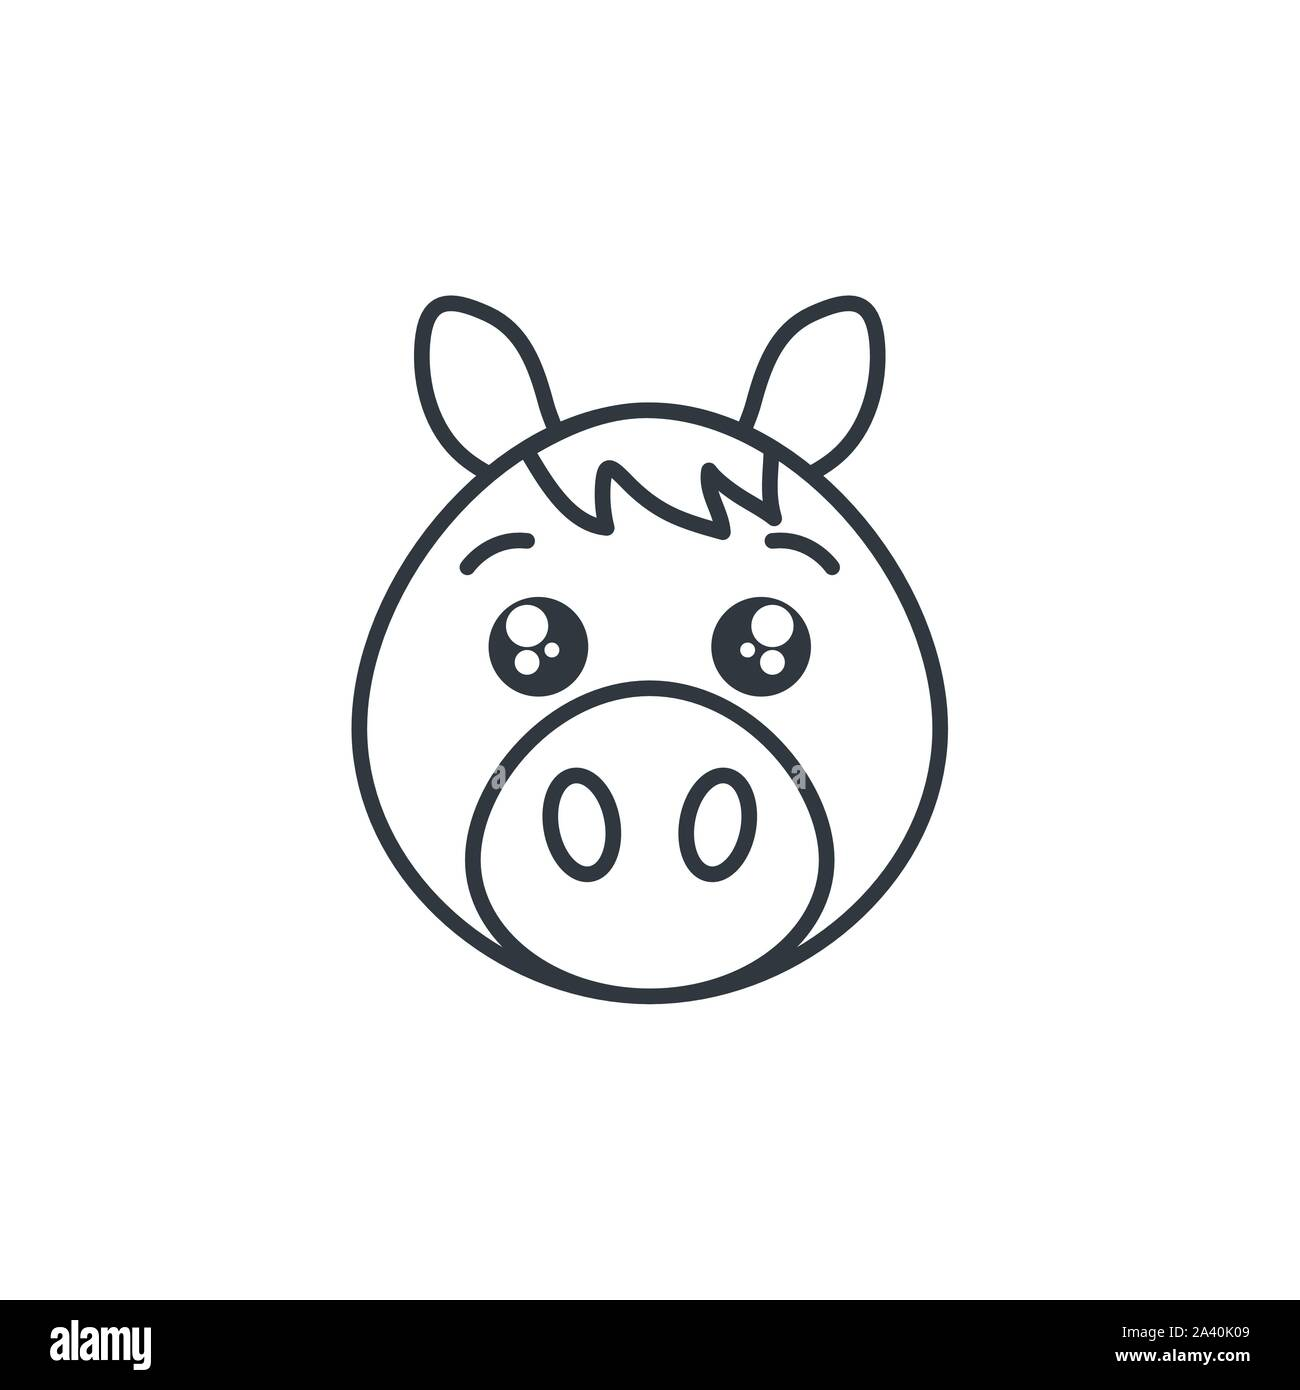 Cute Horse Animal Farm Line Style Icon Vector Illustration Design Stock Vector Image Art Alamy